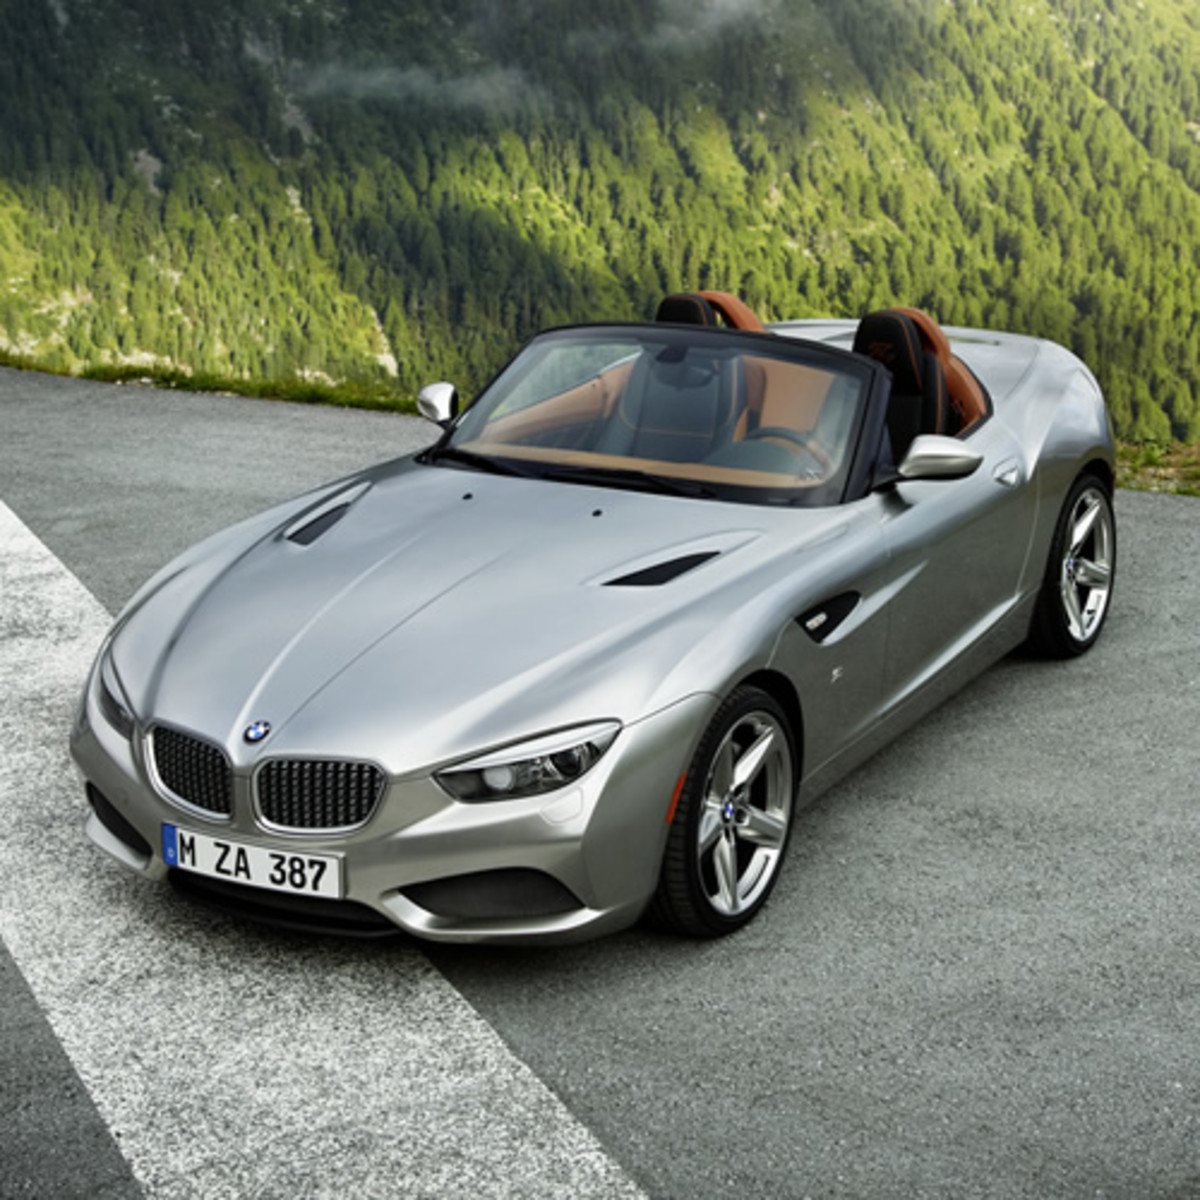 Bmw Z4 Convertible Price: BMW Zagato Roadster